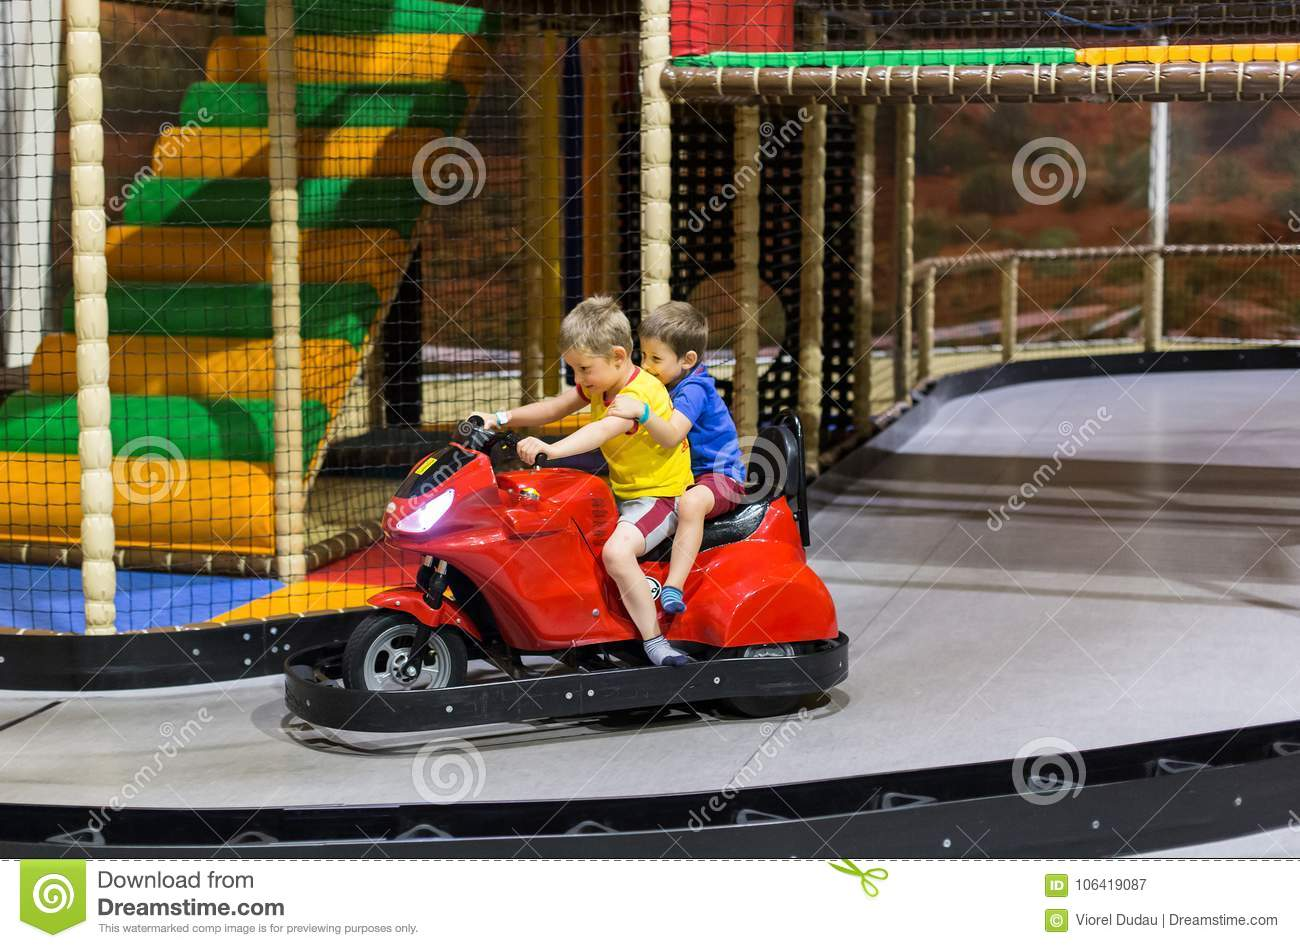 Children on bumper car